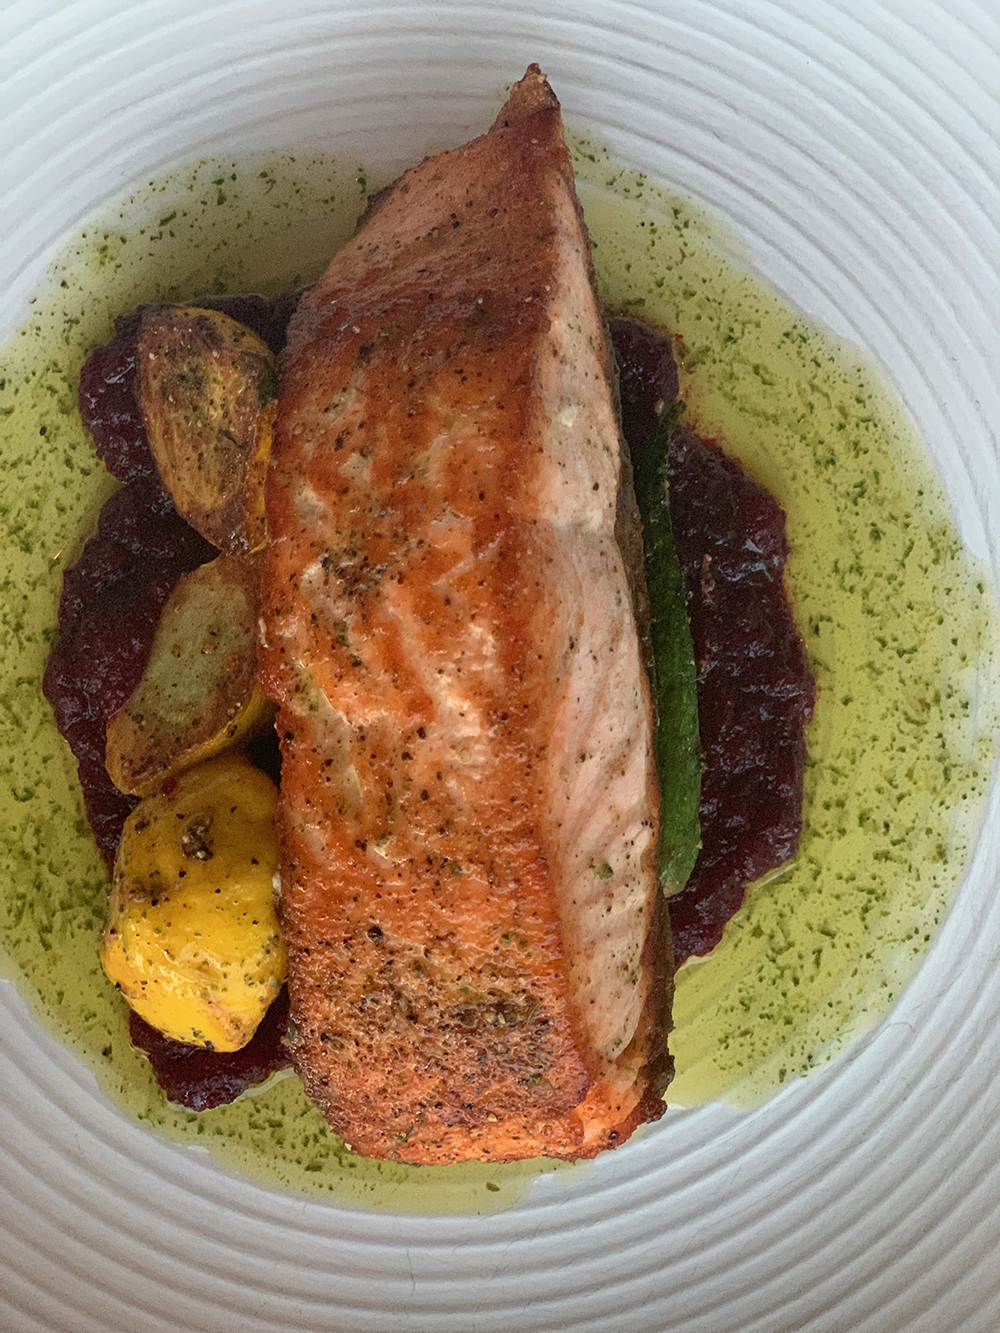 I ordered Scottish salmon with spring pea couscous, brocolini, and tarragon lemon oil.